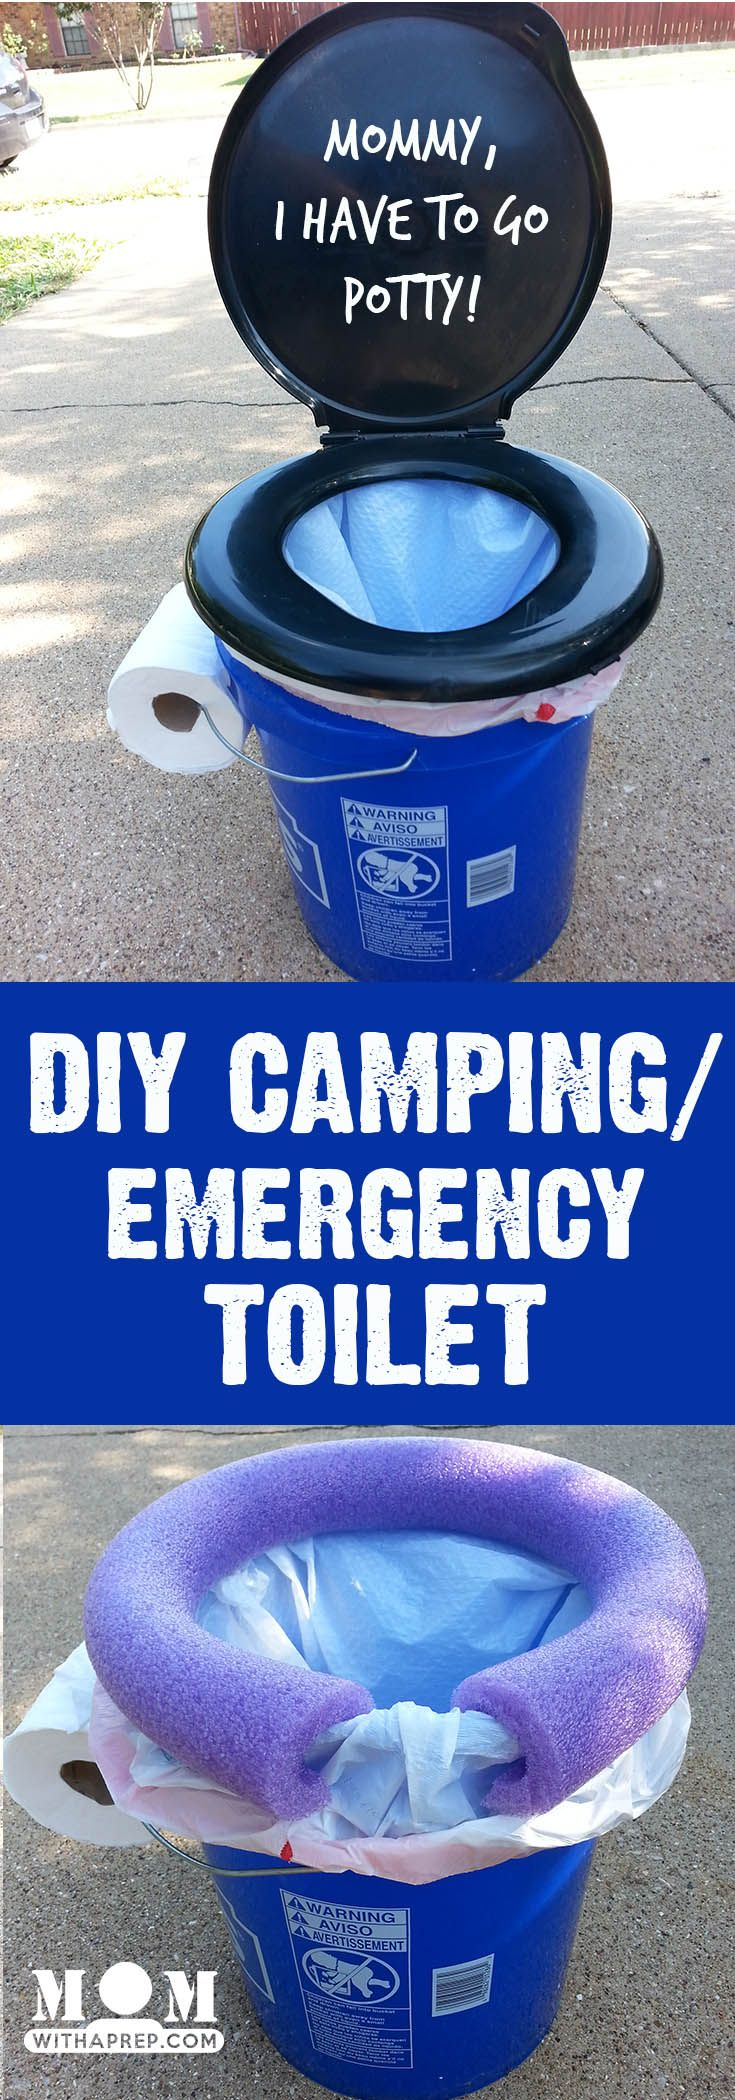 Mommy, I Have to Go Potty! Make Your Own Emergency Toilet | Diy ...